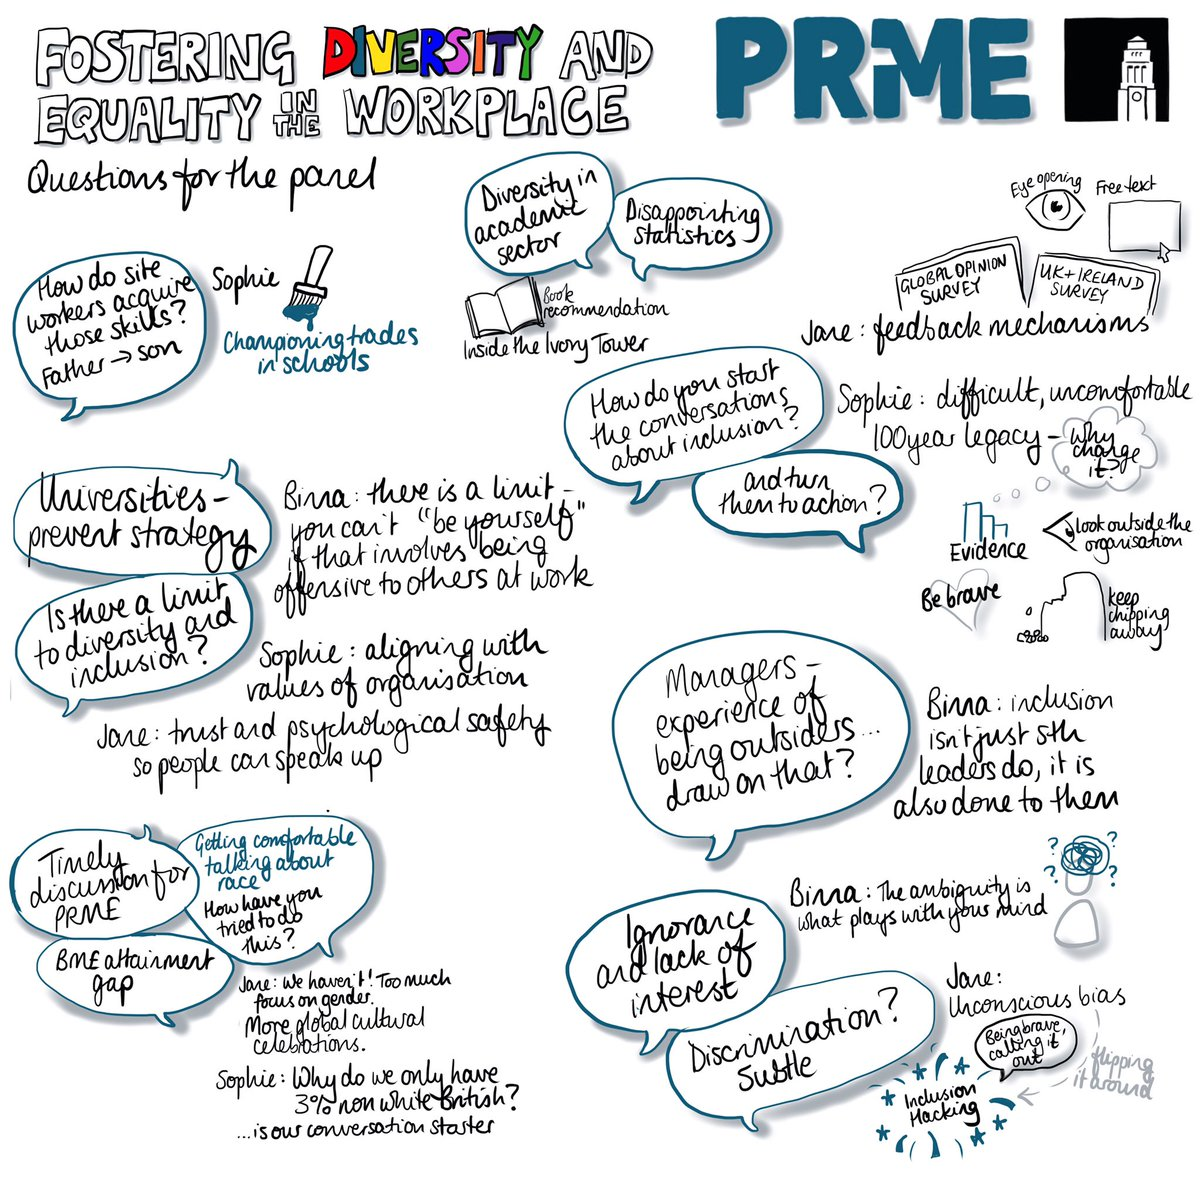 prme-conference-july-2019_48322624896_o.